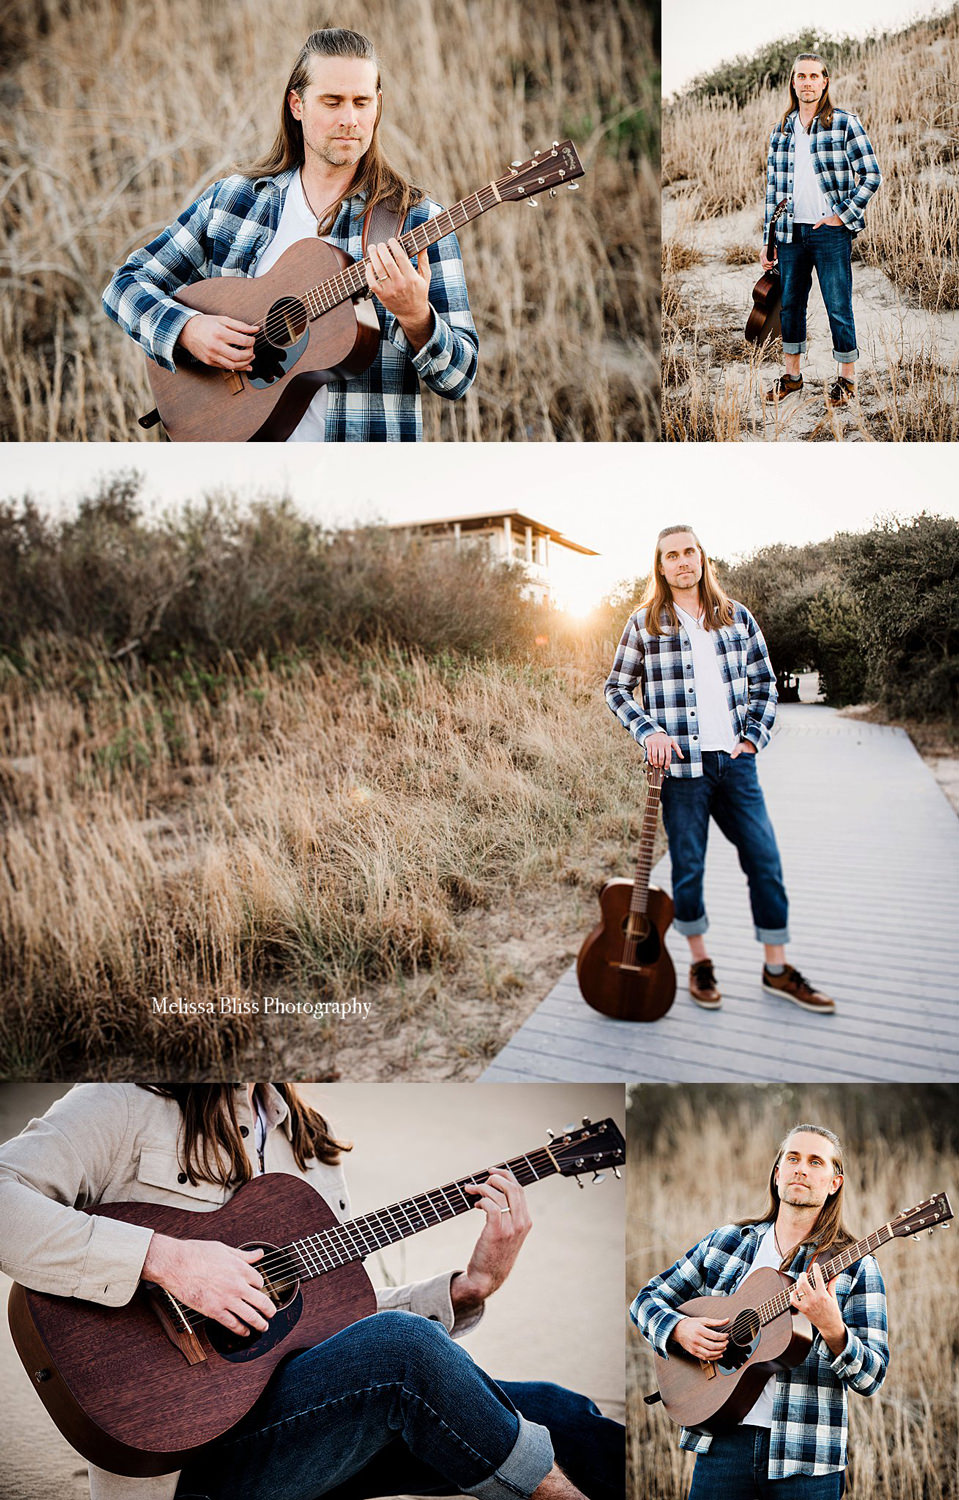 band-promo-photos-virginia-beach-photographer-melissa-bliss-photography.jpg